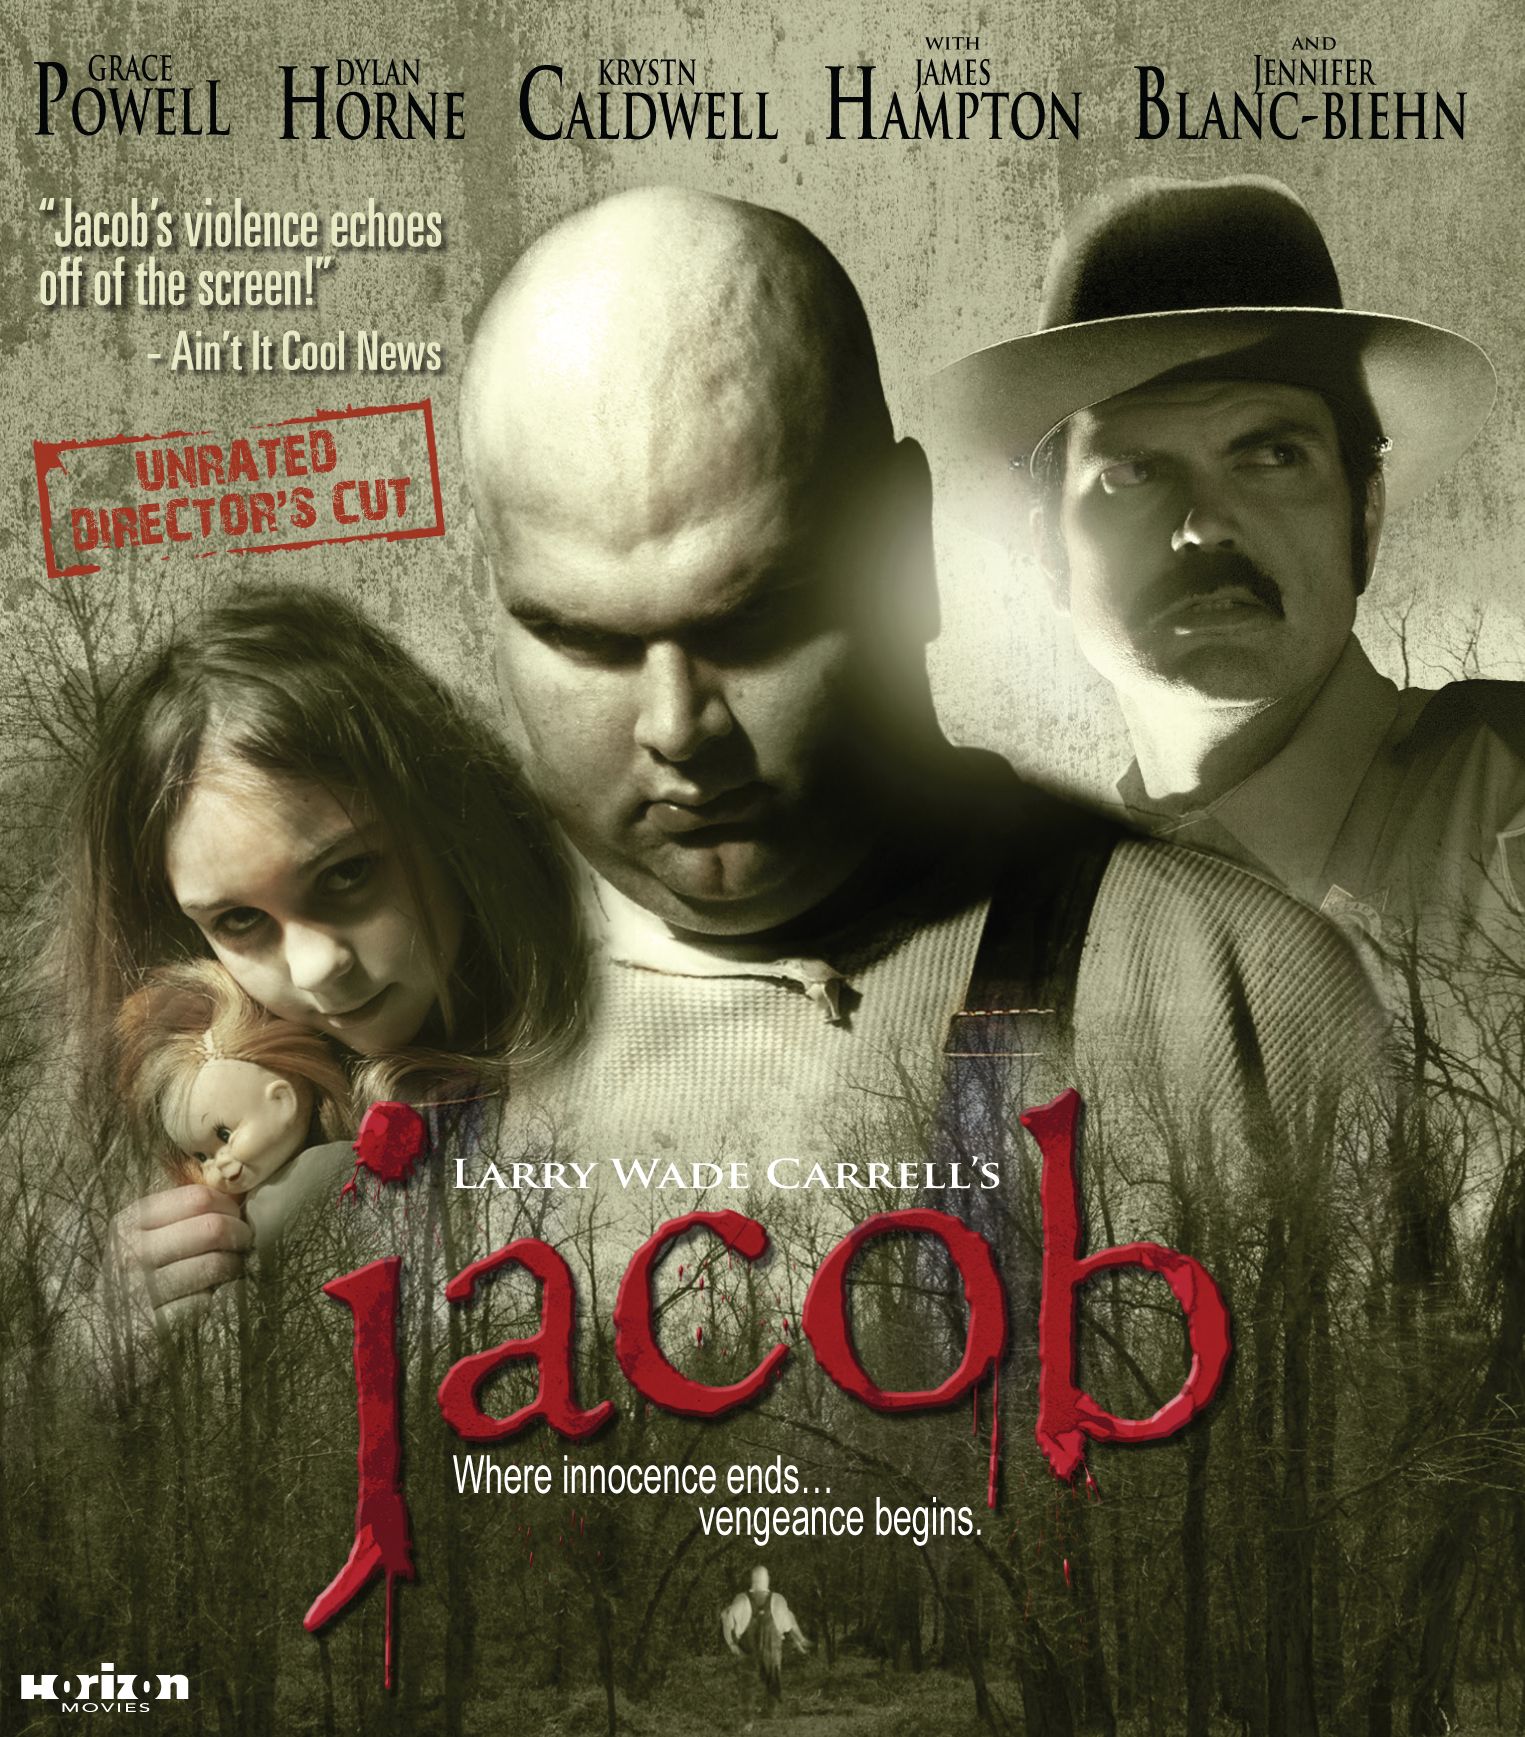 Jacob unrated director 39 s cut kino lorber theatrical for Inside unrated full movie